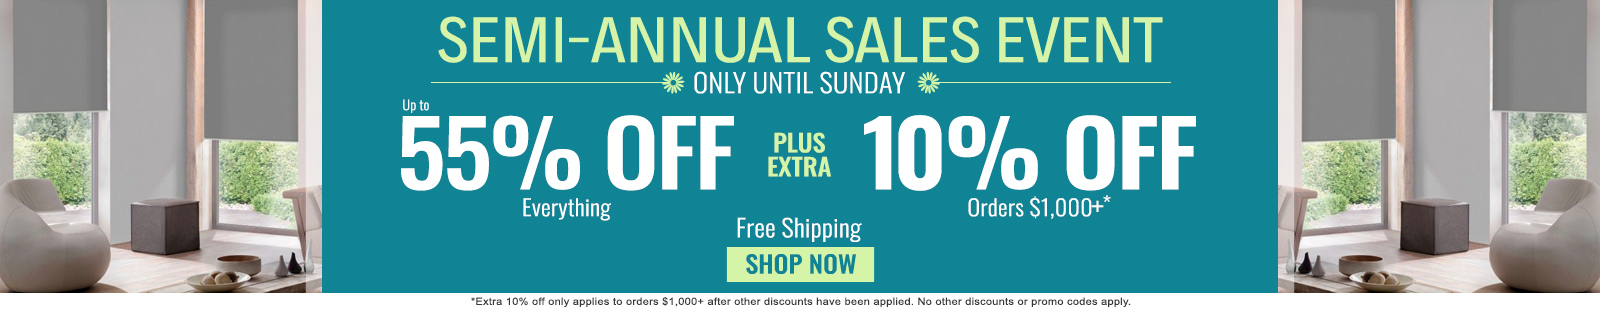 50%-55% off everything plus extra 10% off orders $1,000+